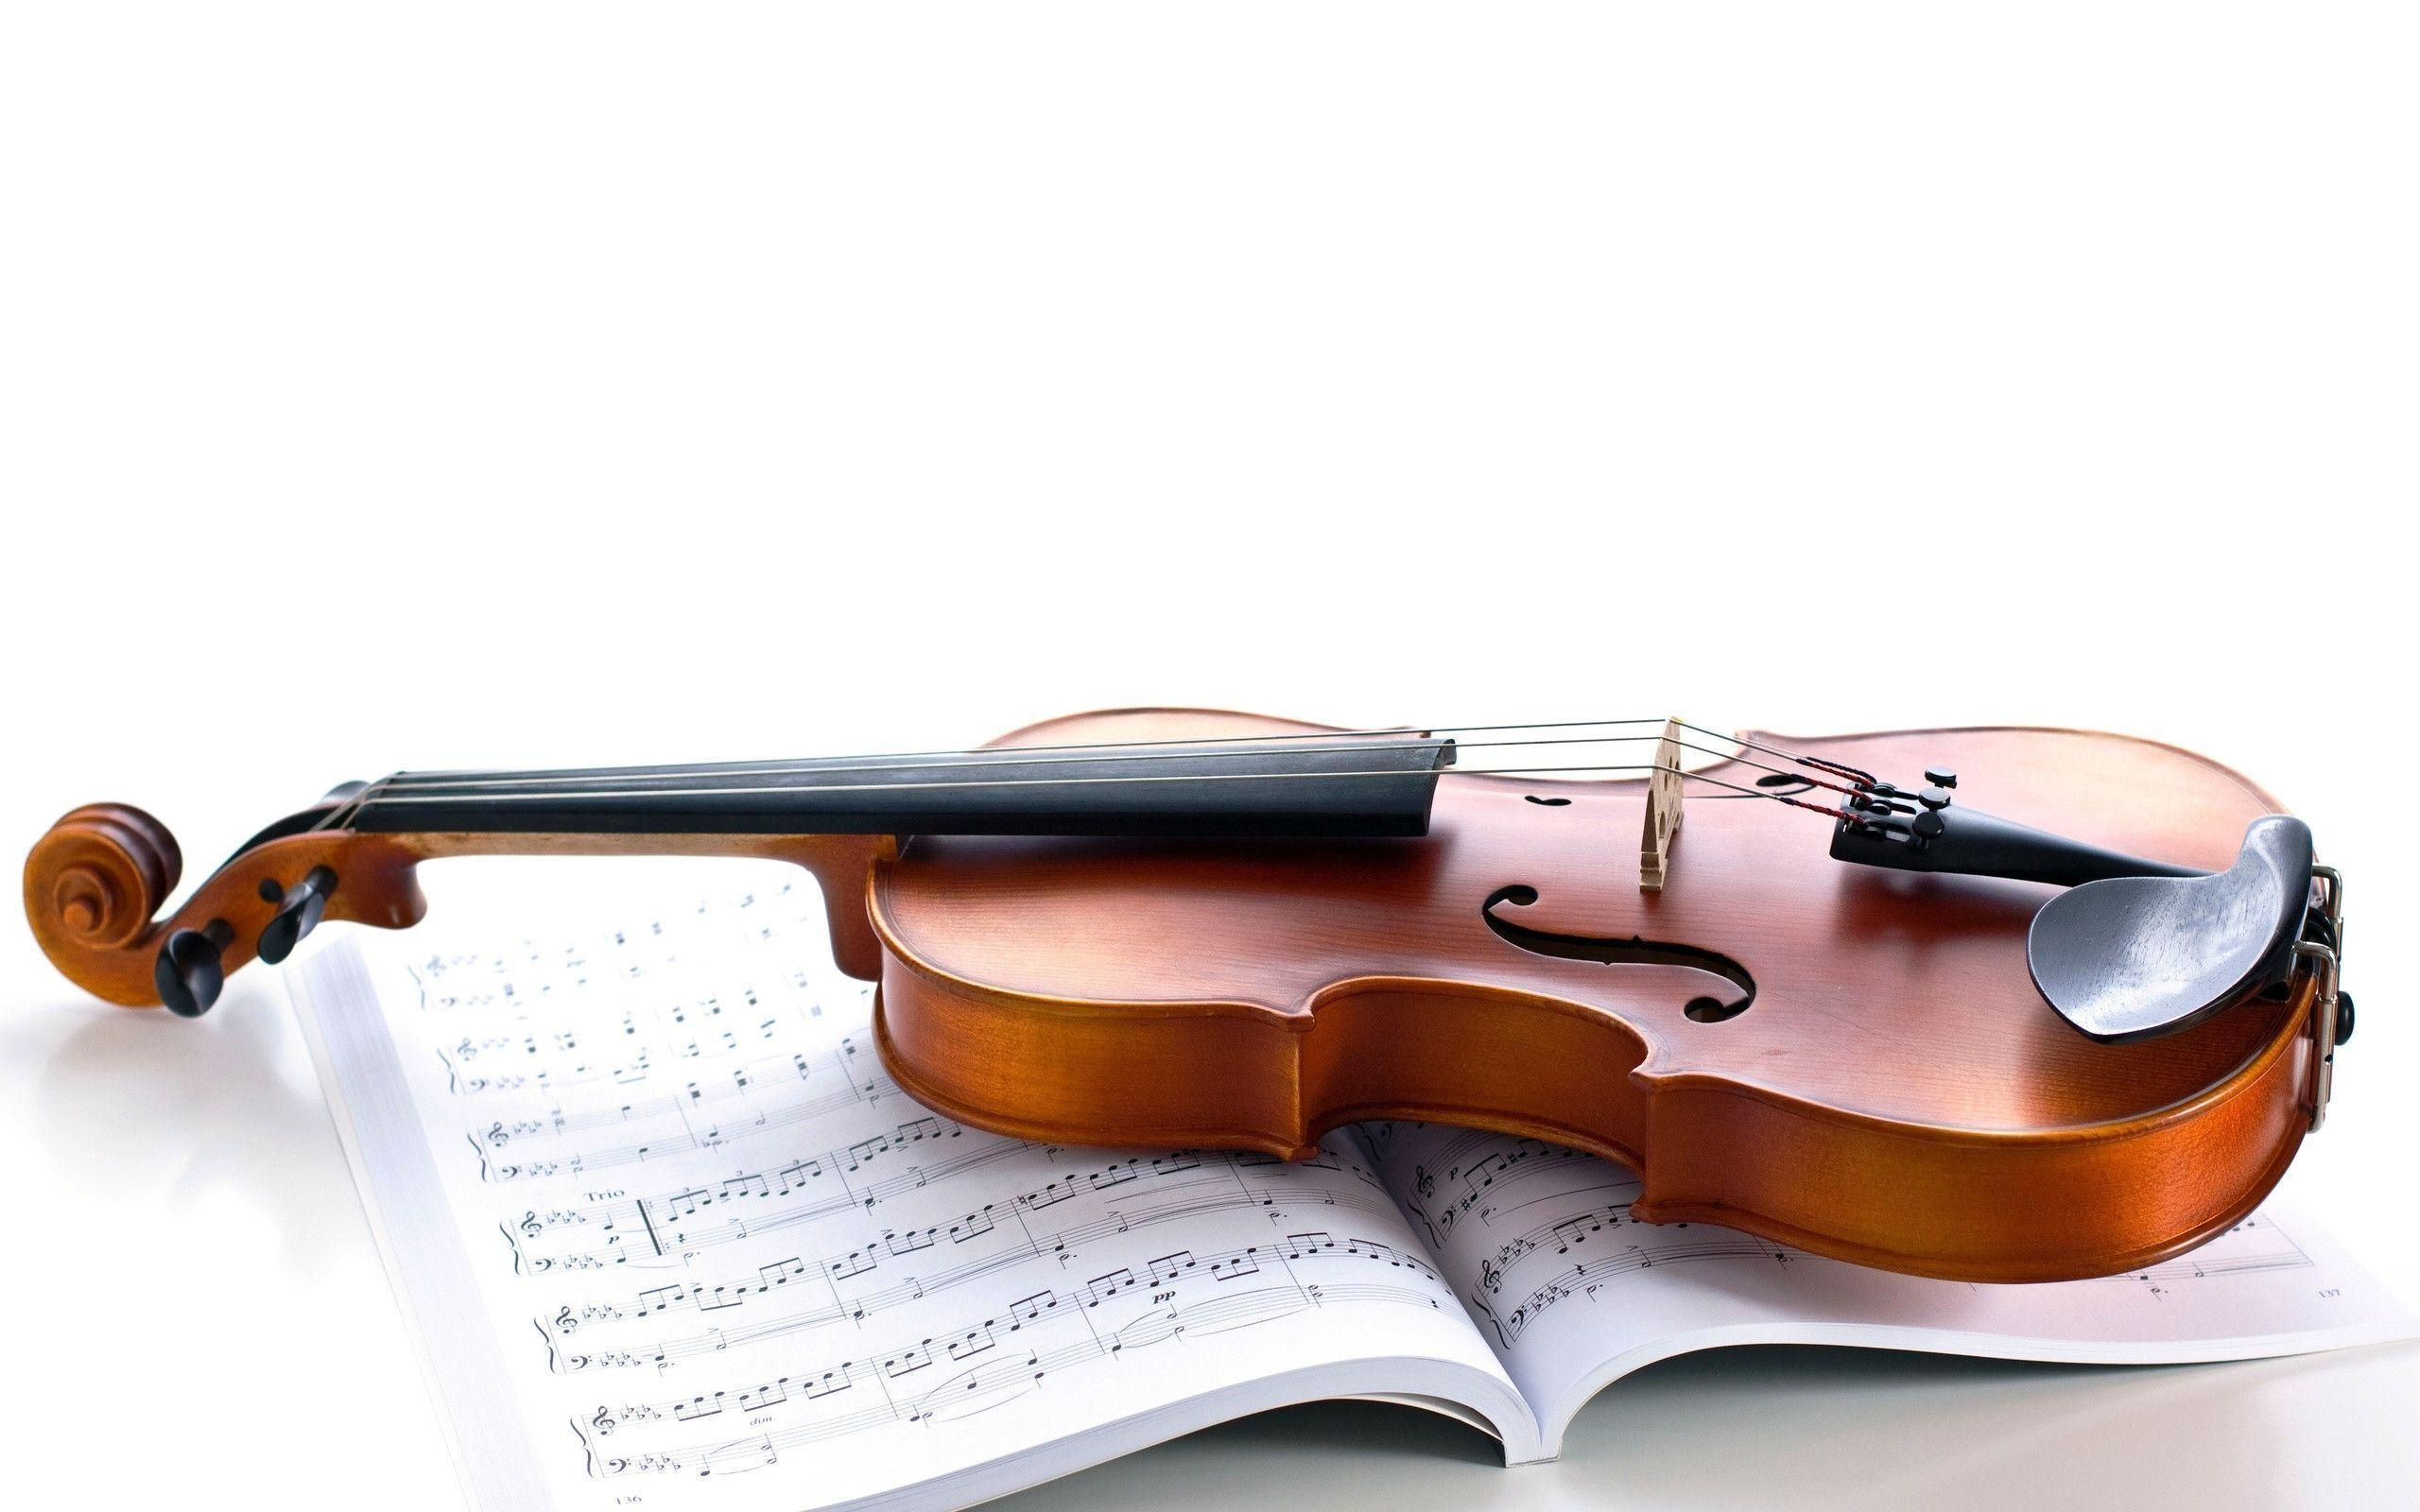 Violin Computer Wallpapers, Desktop Backgrounds 2560x1600 Id: 293568